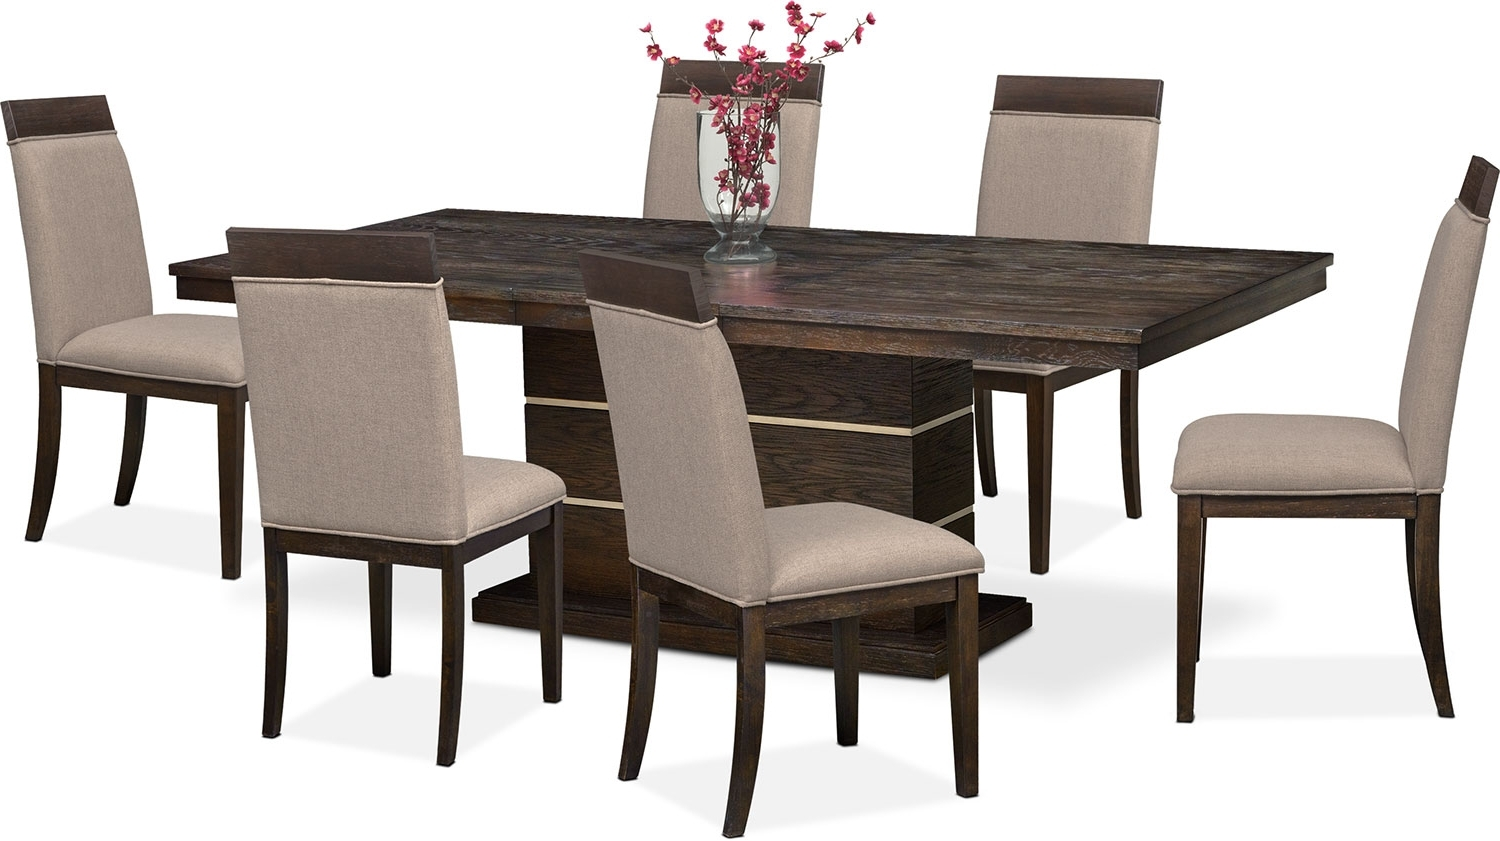 Gavin 6 Piece Dining Sets With Clint Side Chairs With Regard To Famous Gavin Pedestal Table And 6 Side Chairs – Brownstone (View 4 of 25)